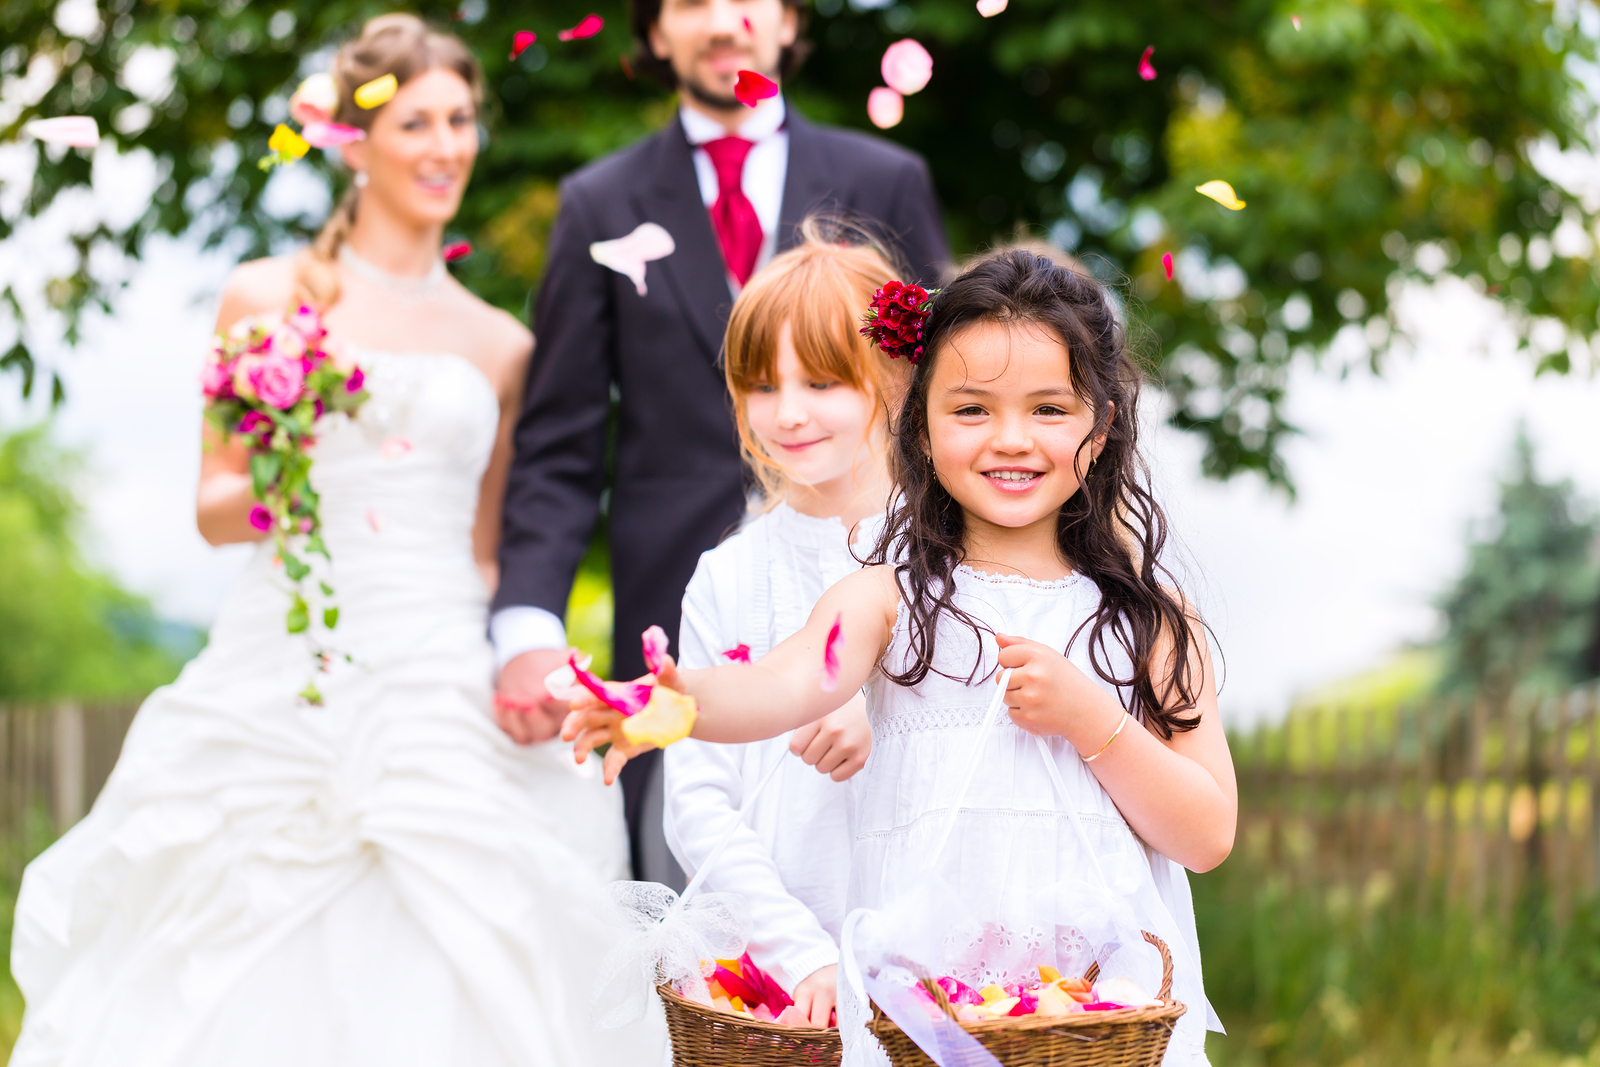 bride and groom at wedding with children